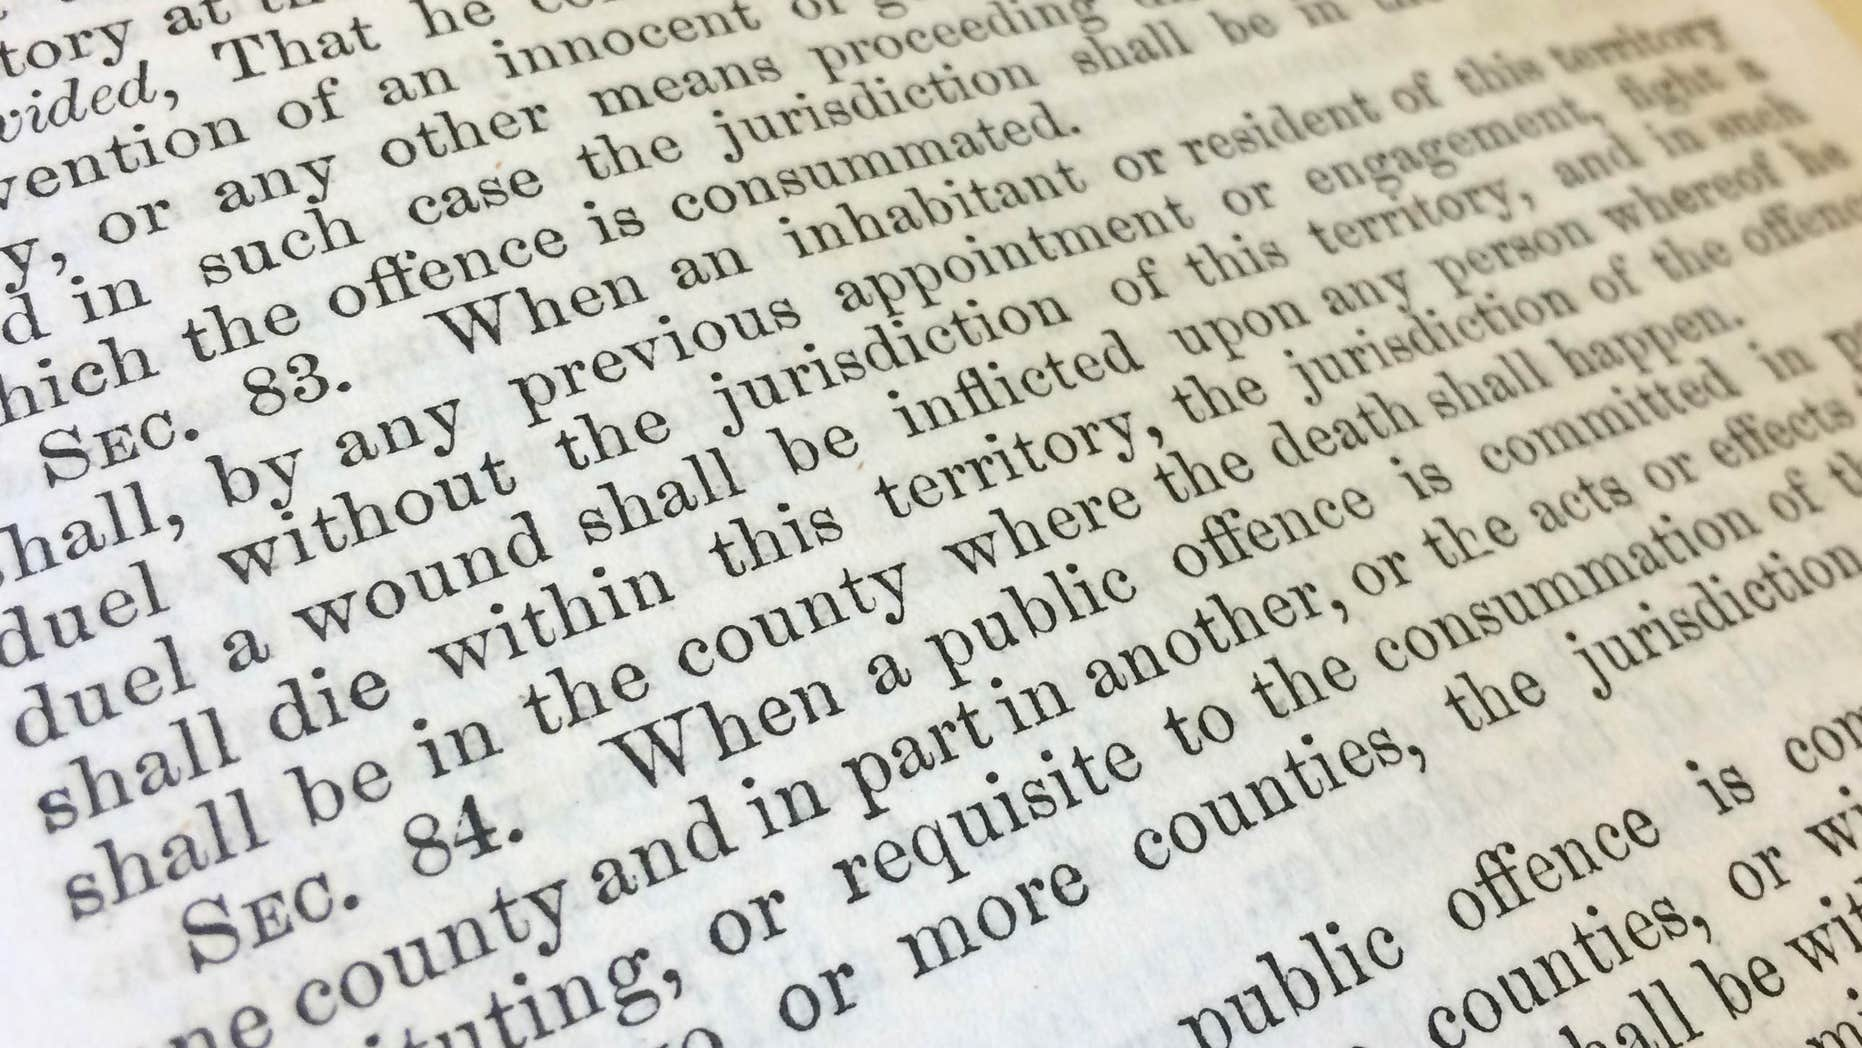 Feb. 13, 2015: The 1864 Idaho law dealing with dueling in Boise, Idaho.